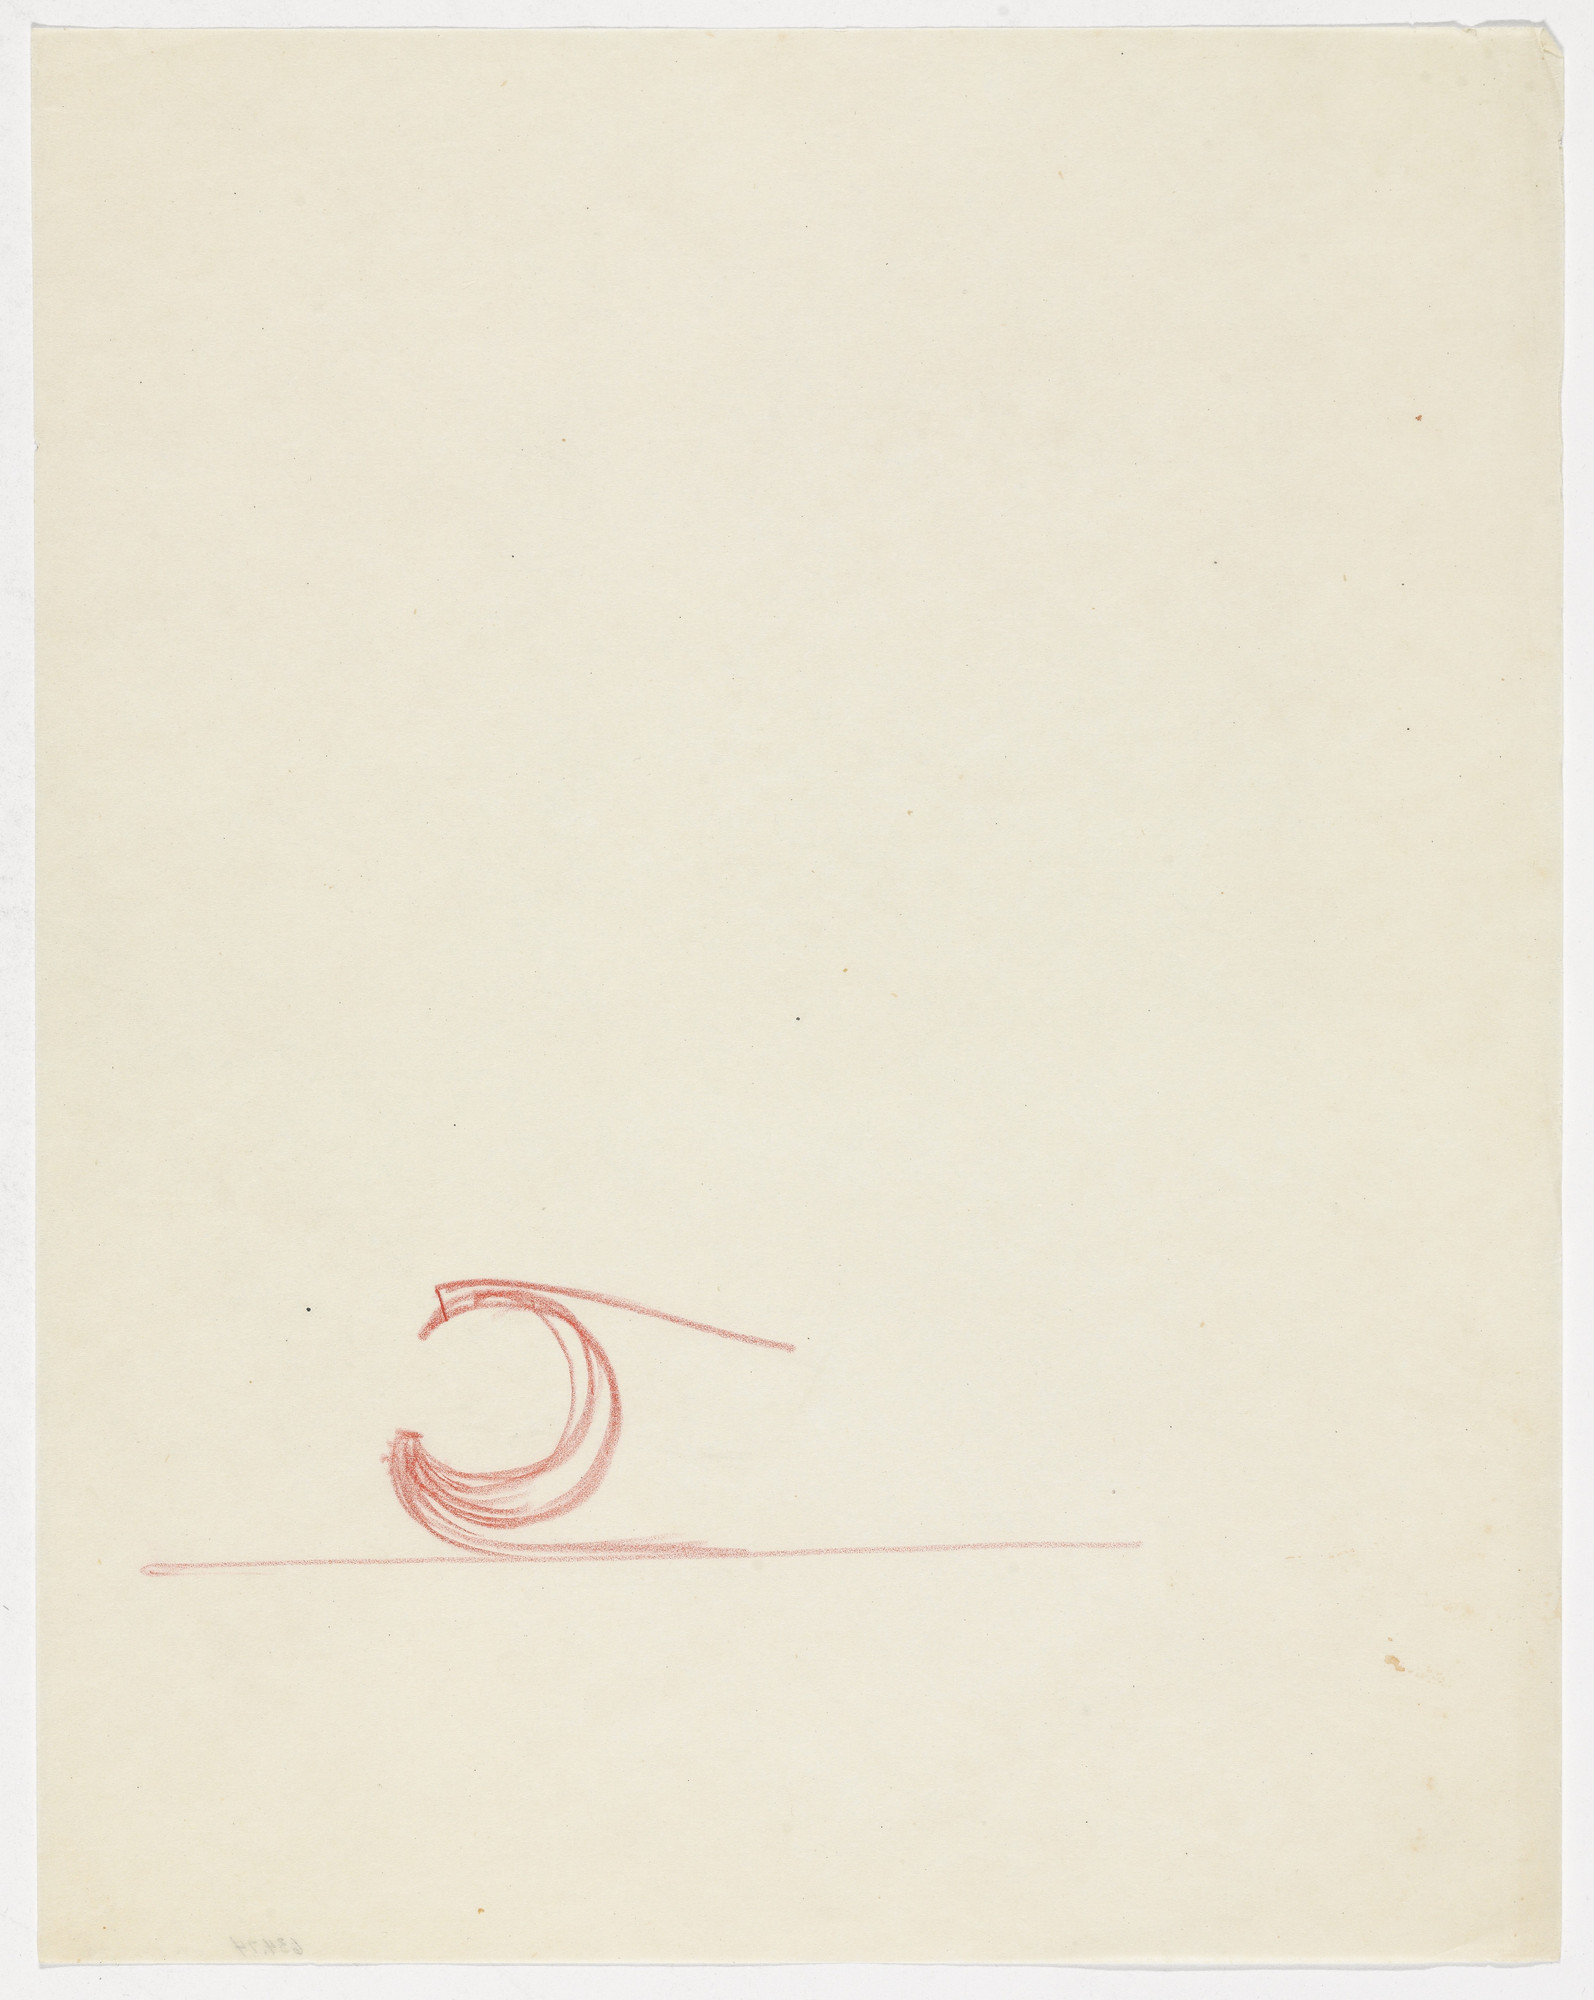 Ludwig Mies van der Rohe. Chair Frame Detail (Elevation sketch). 1934